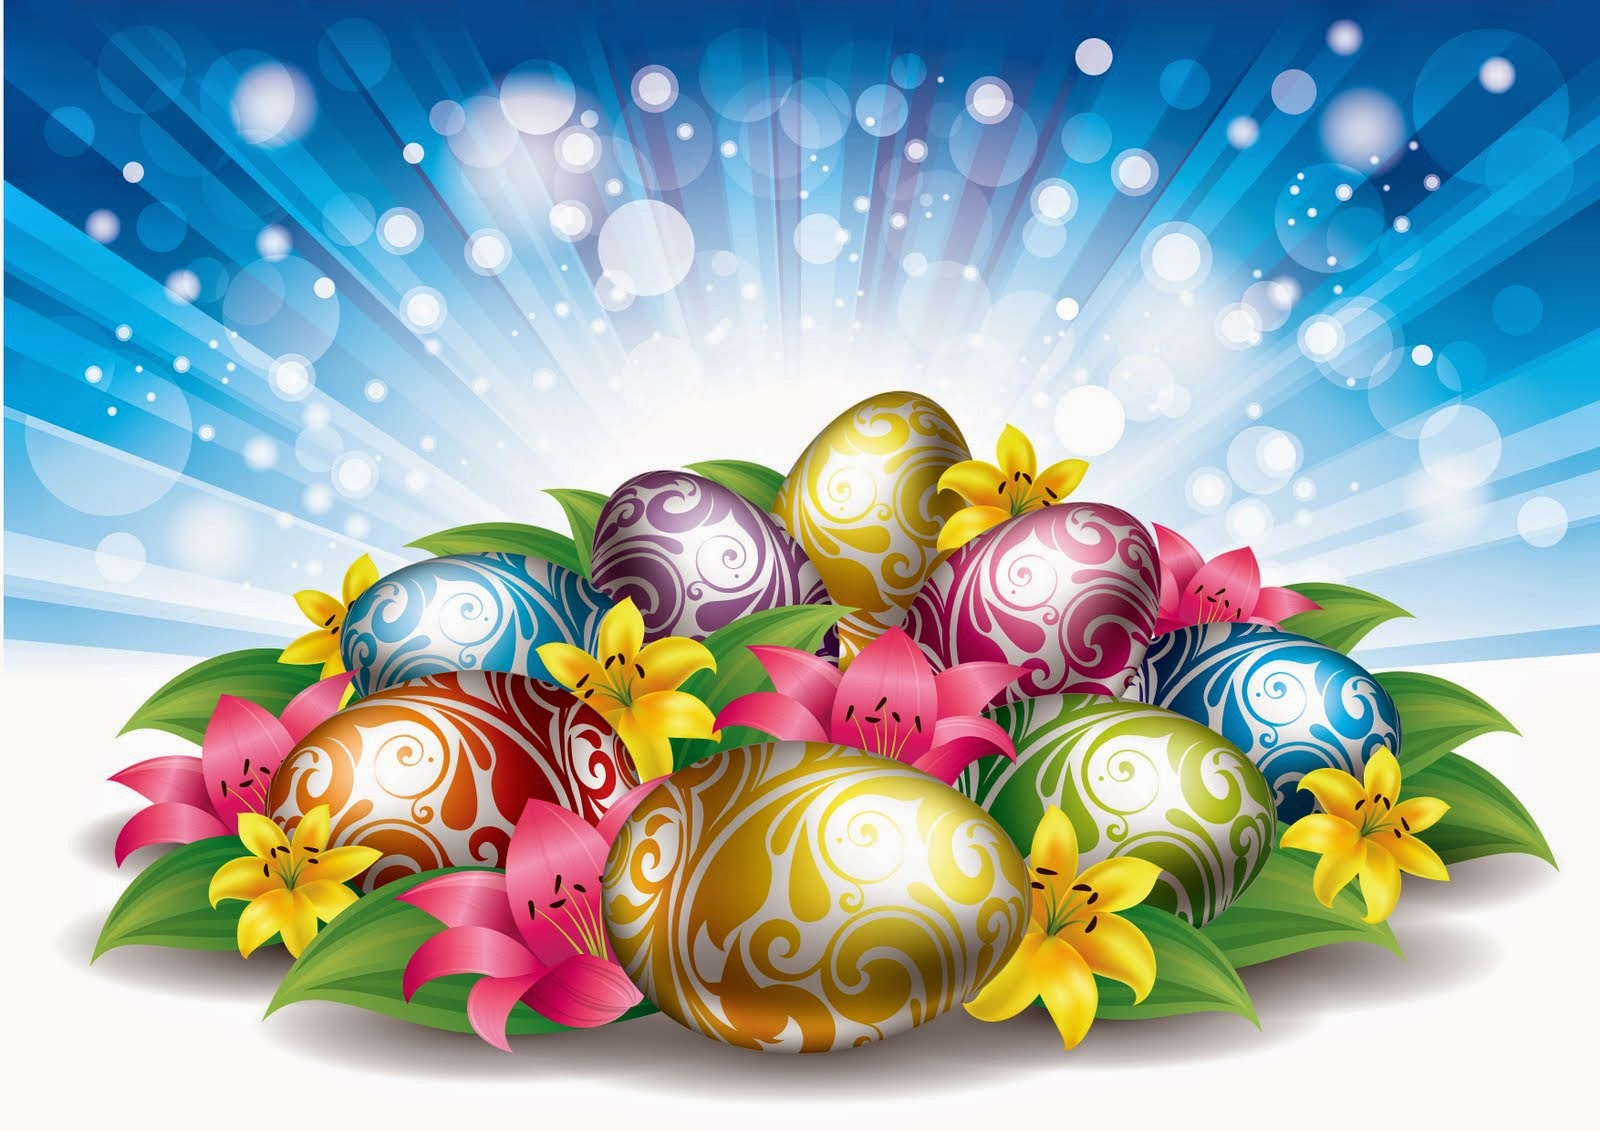 Happy Easter 2015 (Easter Images, Easter Greeting Easter Wallpapers) Easter  2015